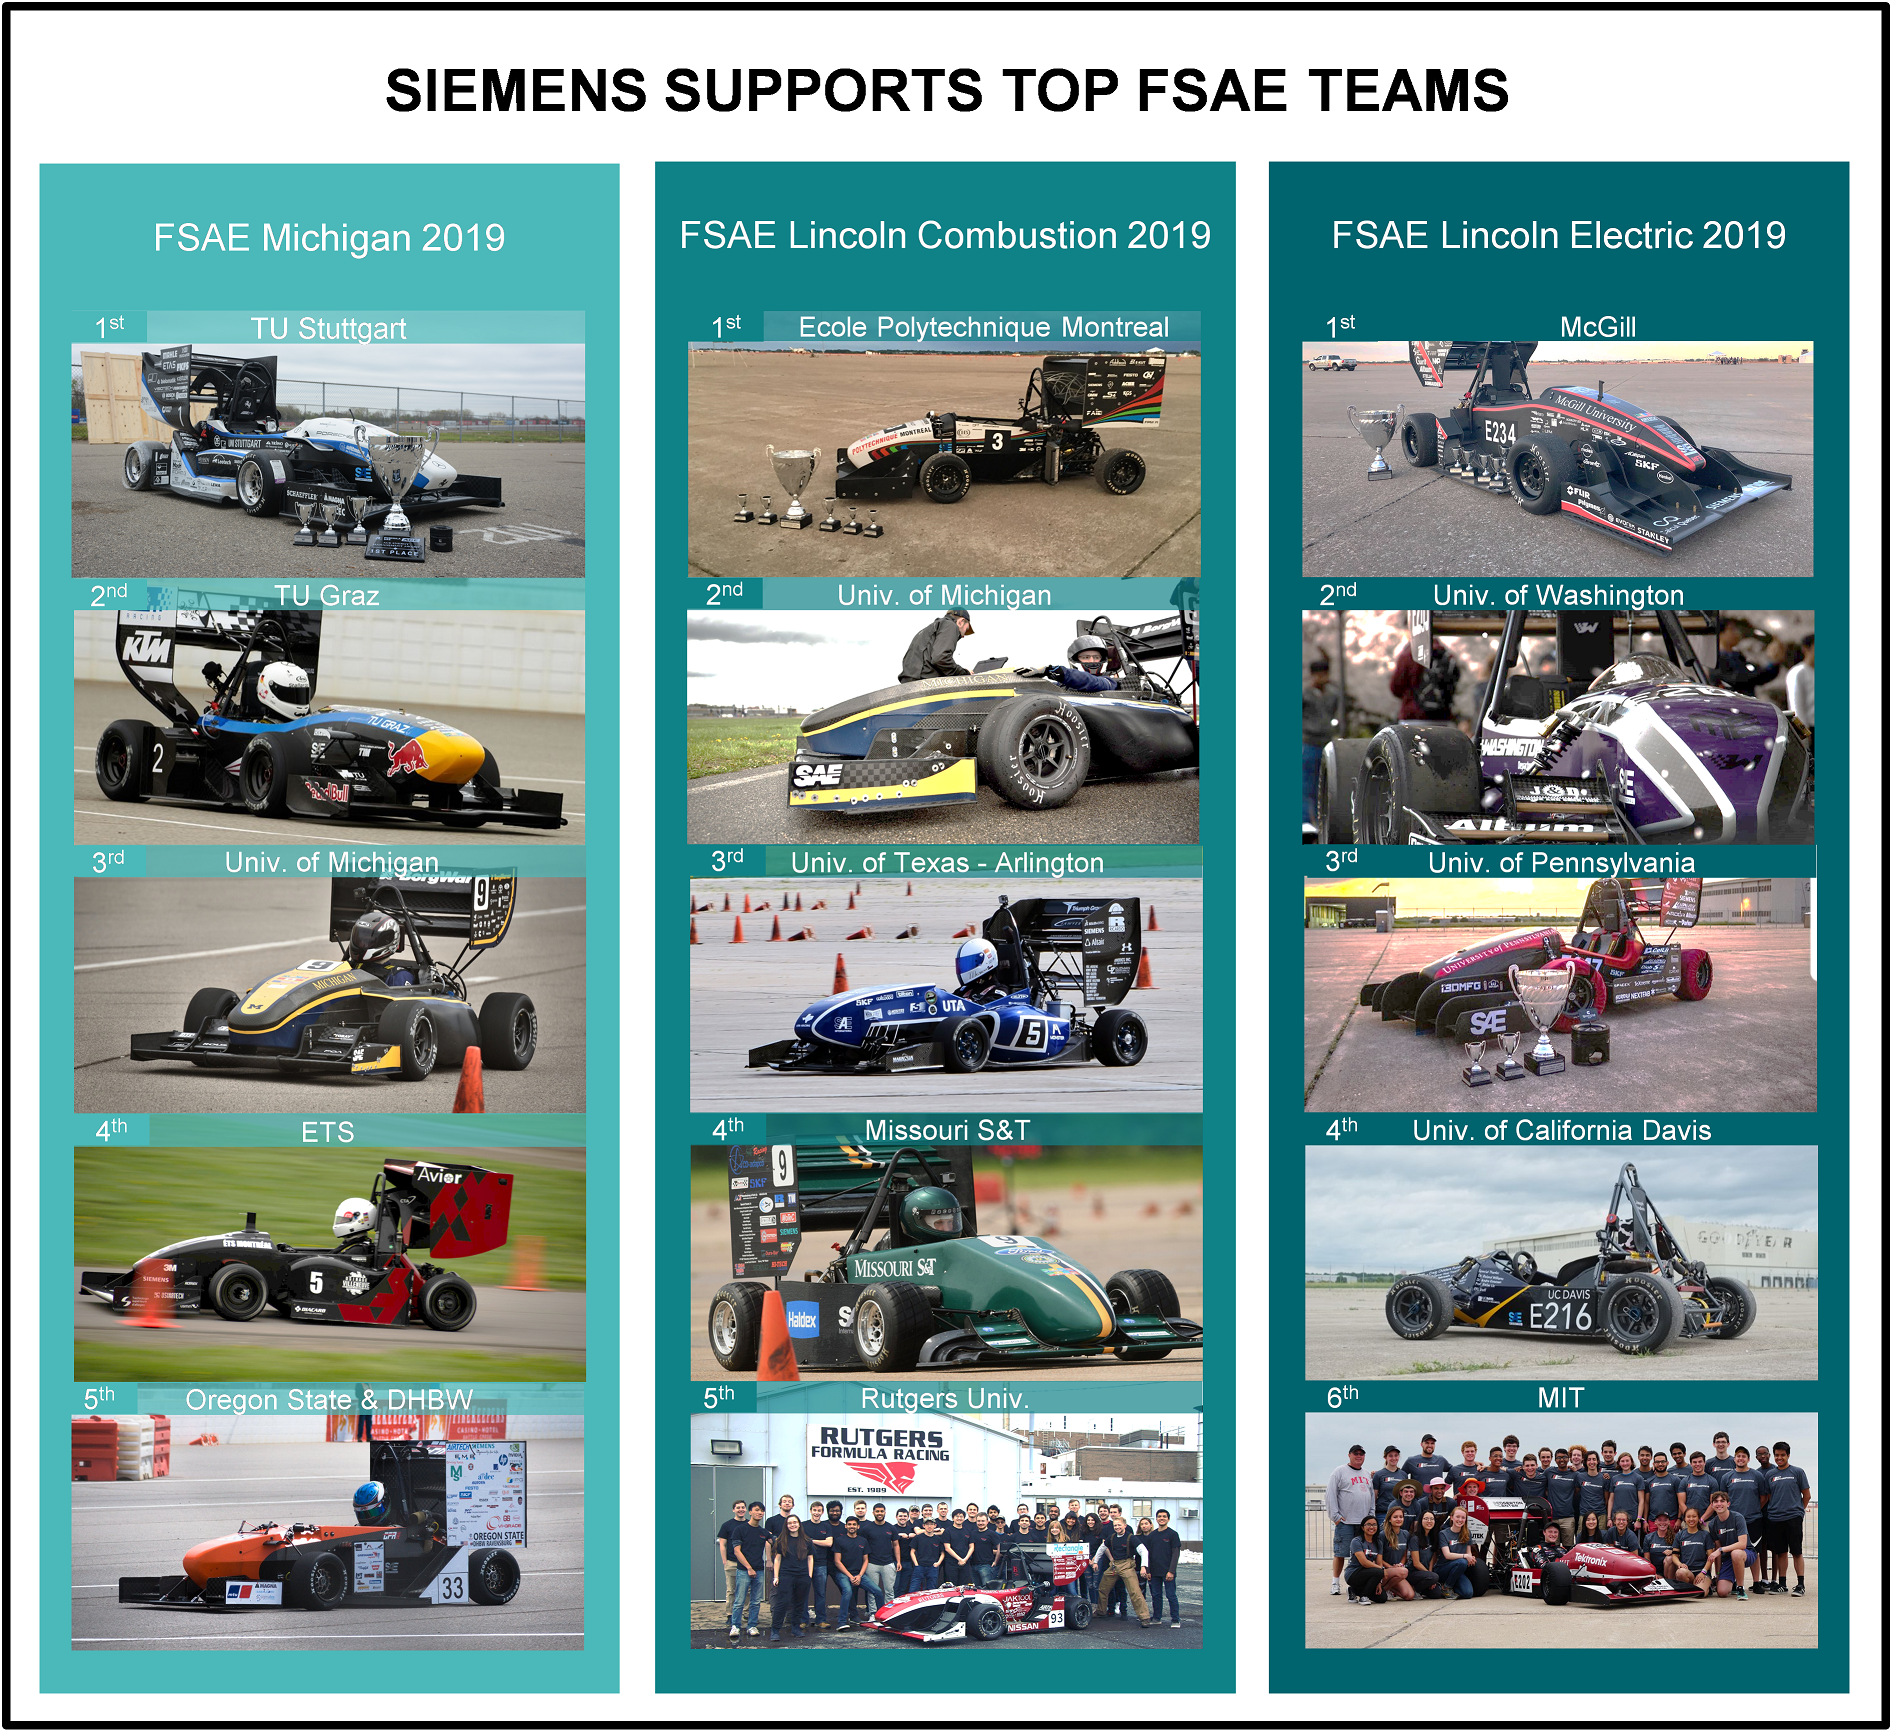 Supporting_top_teams_FSAE_v3.png